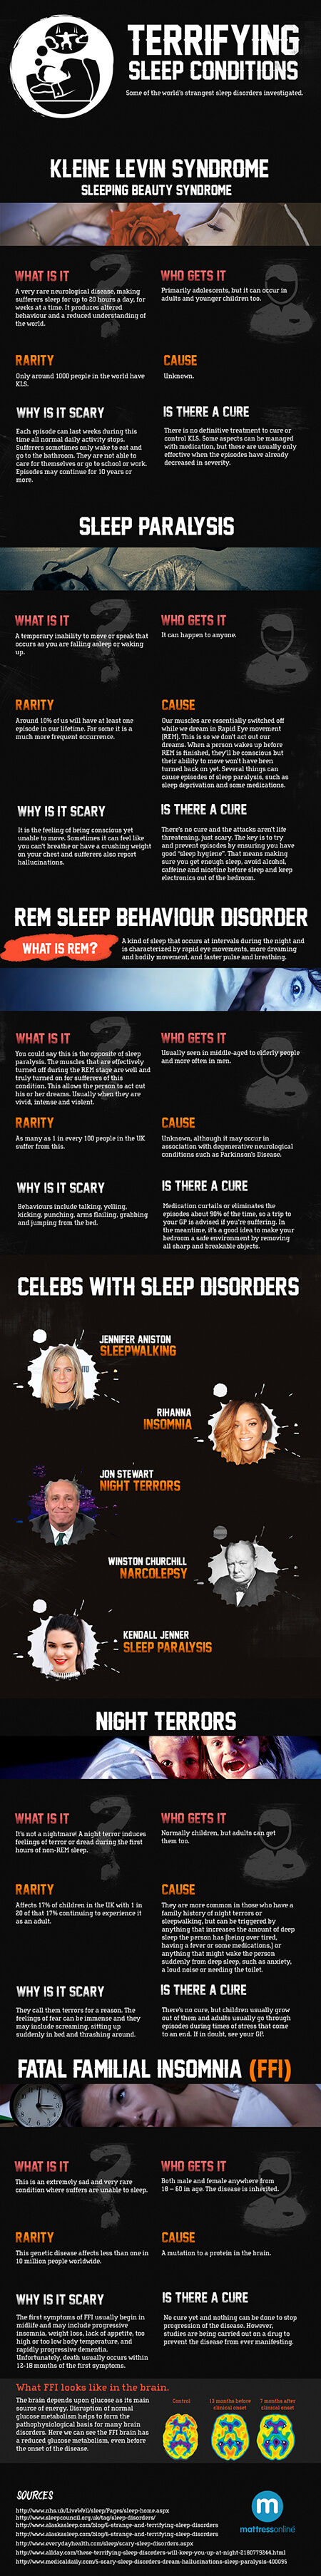 Terrifying Sleep Conditions infographic